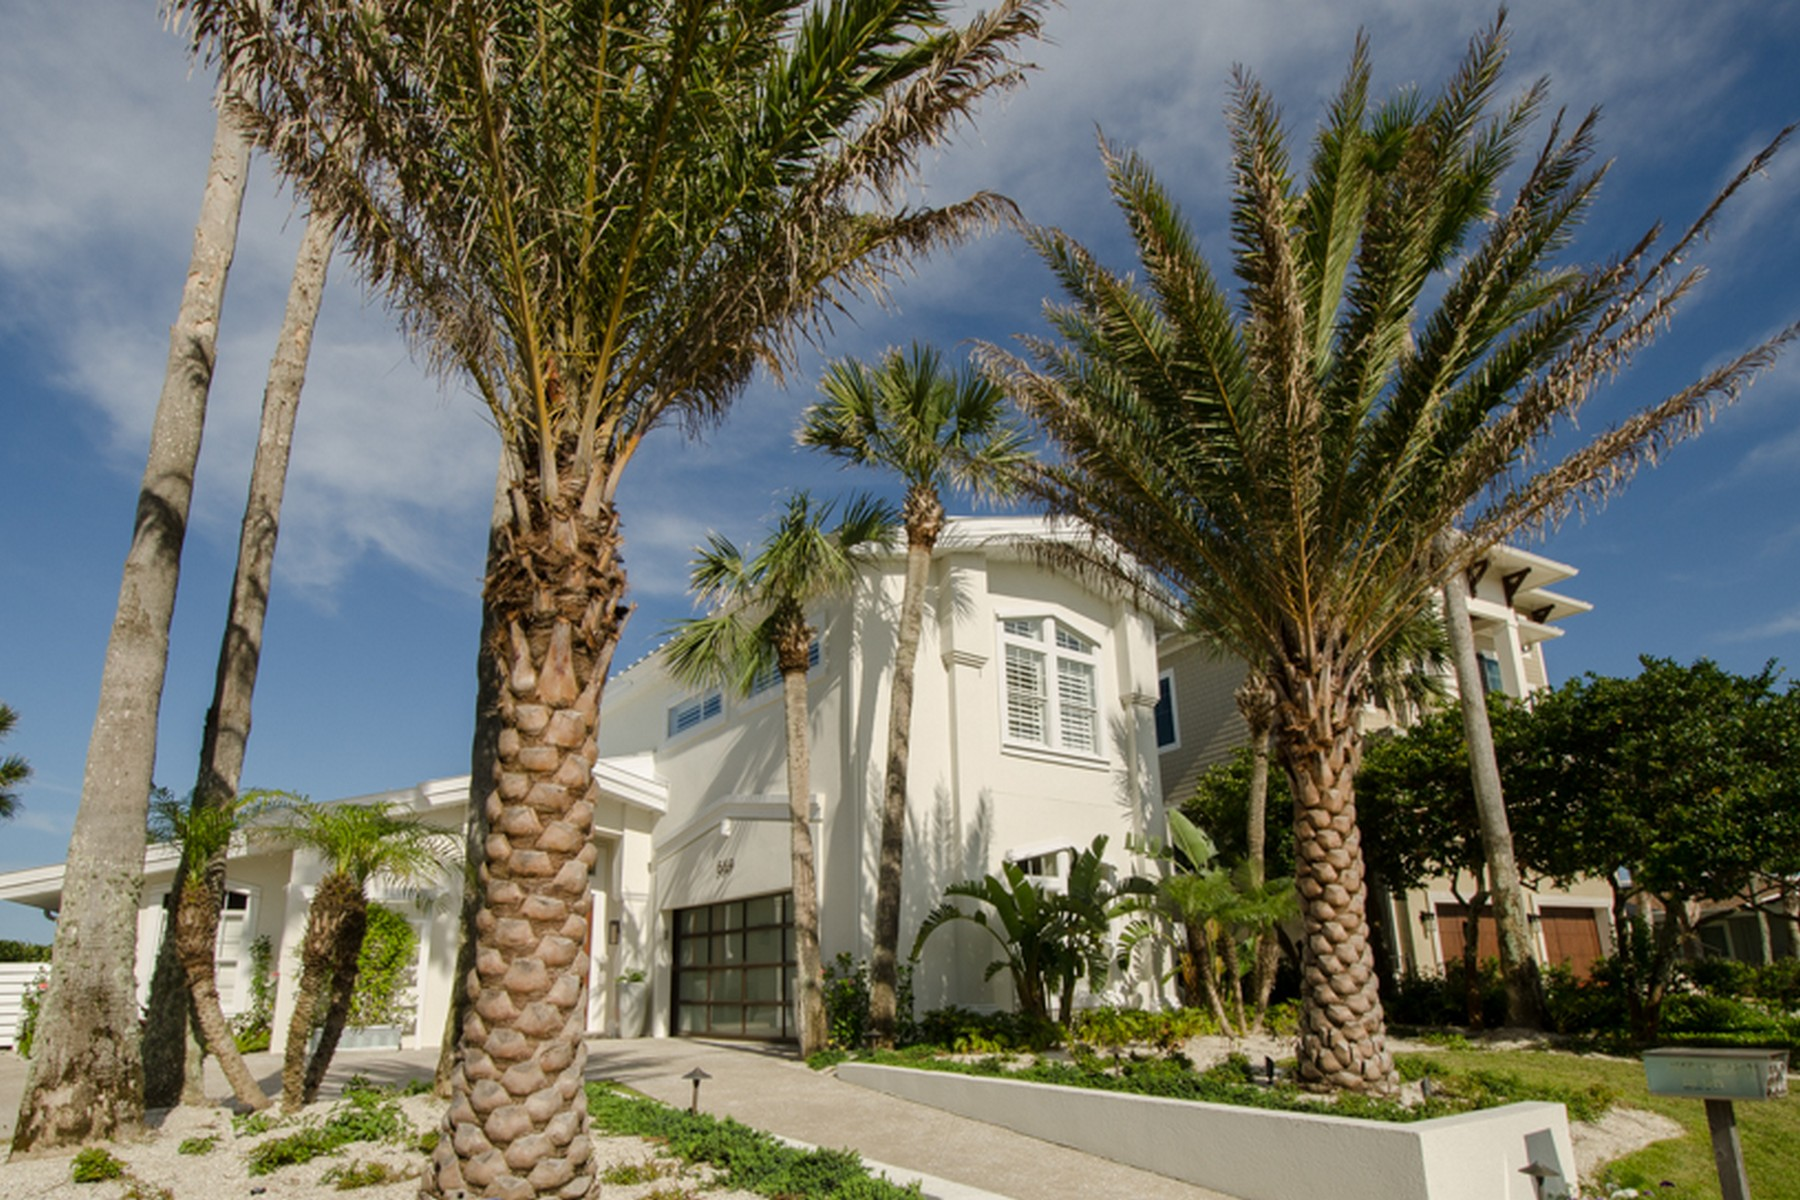 Single Family Home for Sale at Oceanfront Perfection 559 Ponte Vedra Boulevard Ponte Vedra Beach, Florida, 32082 United States